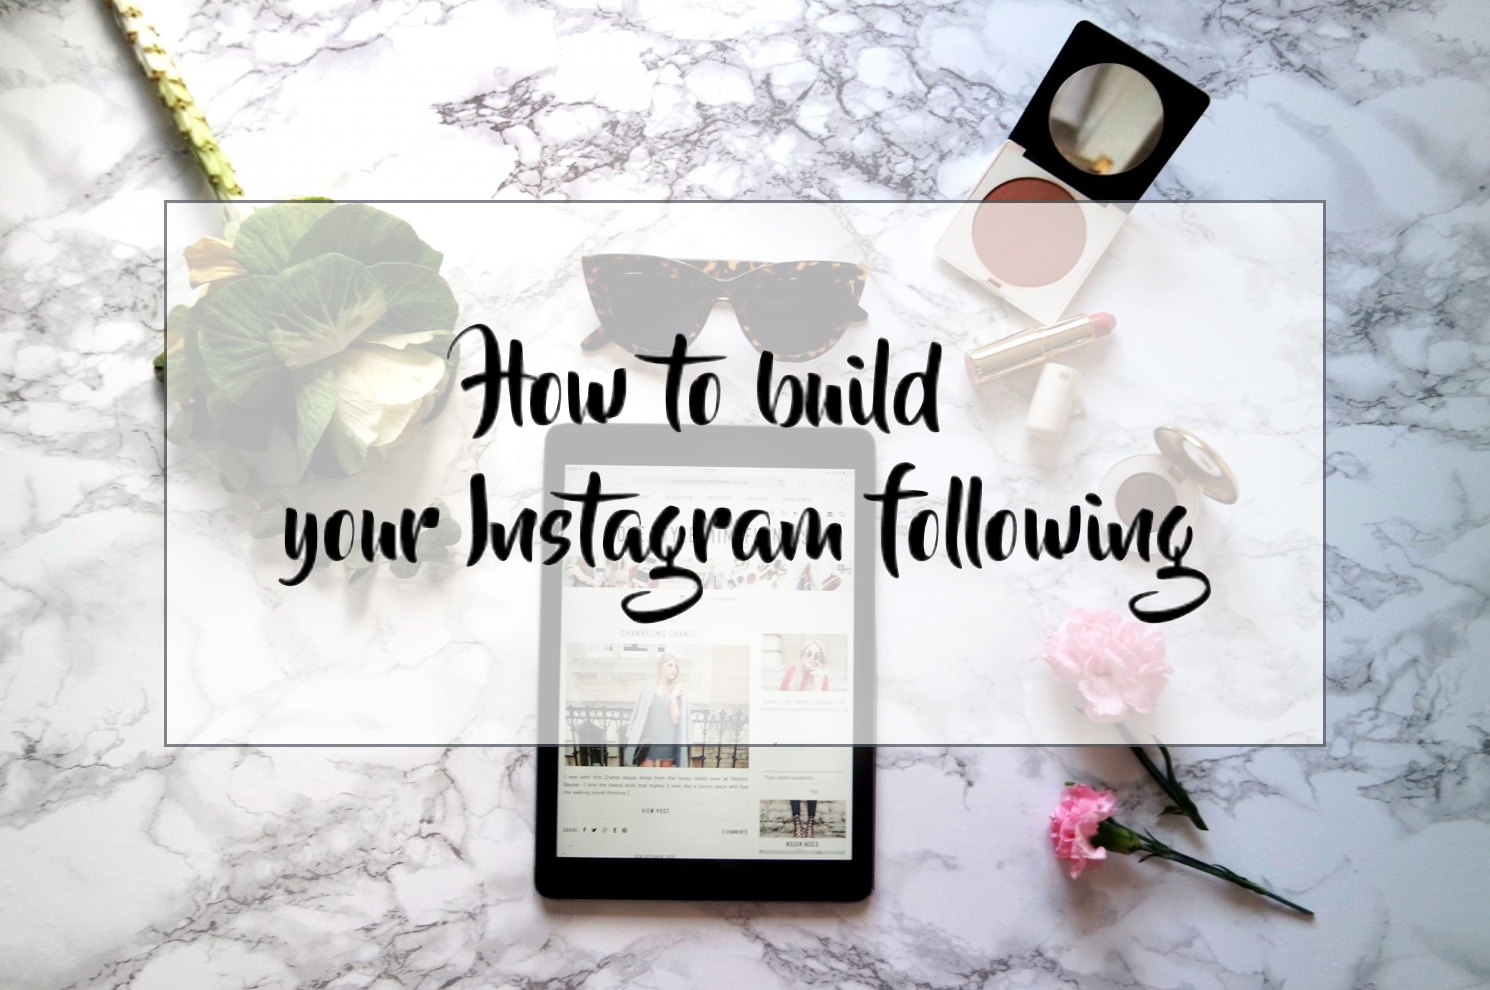 How to build your Instagram following